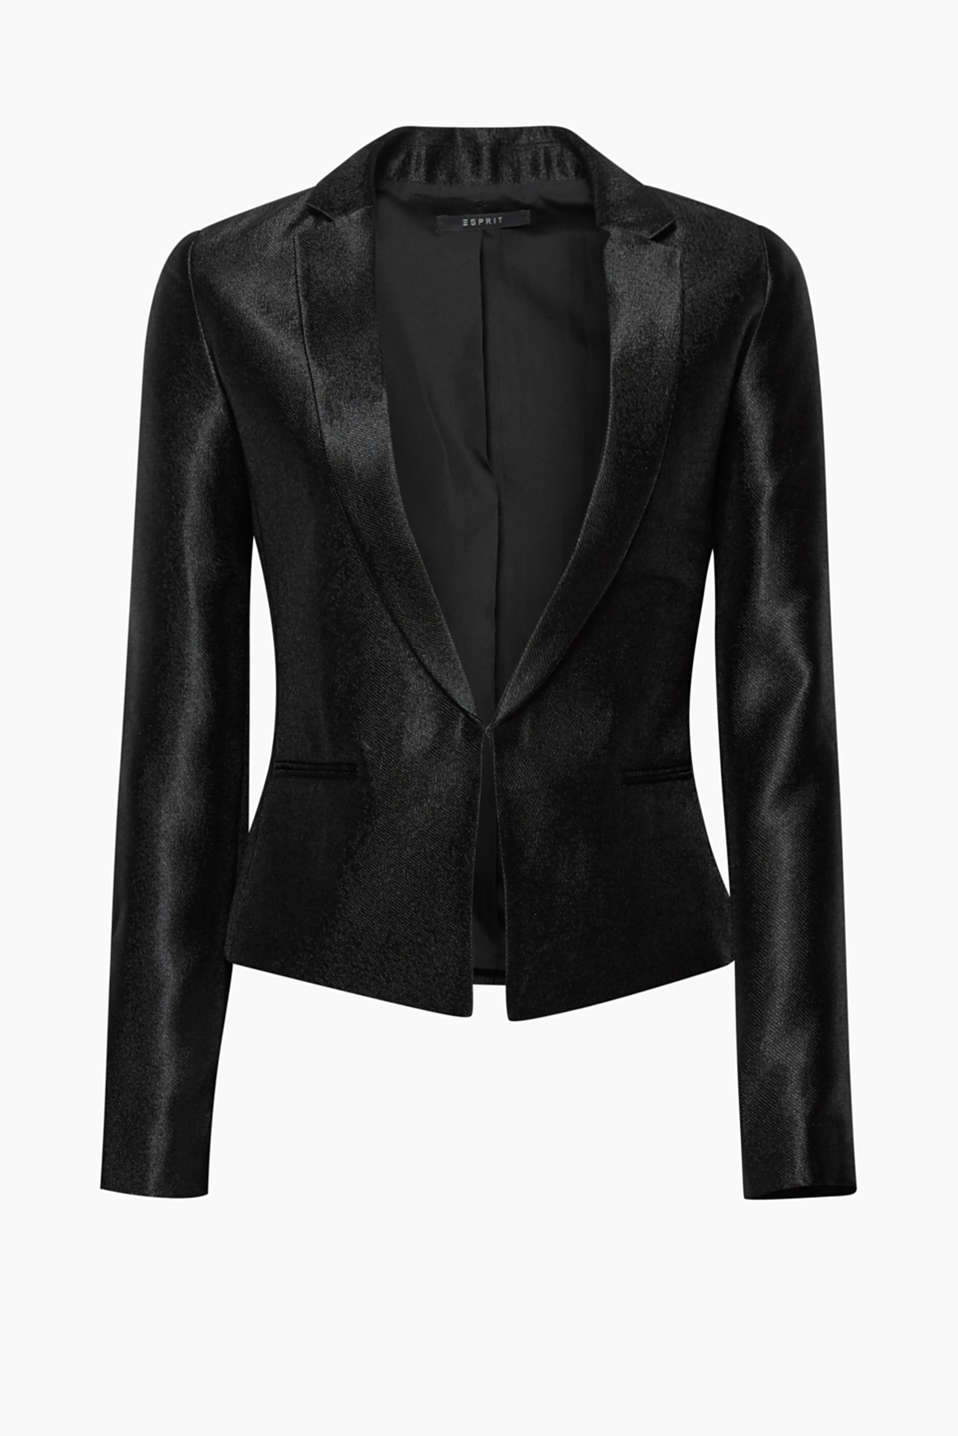 Smart and shiny: this short, fitted blazer featuring a finely ribbed texture guarantees a glittering entrance!